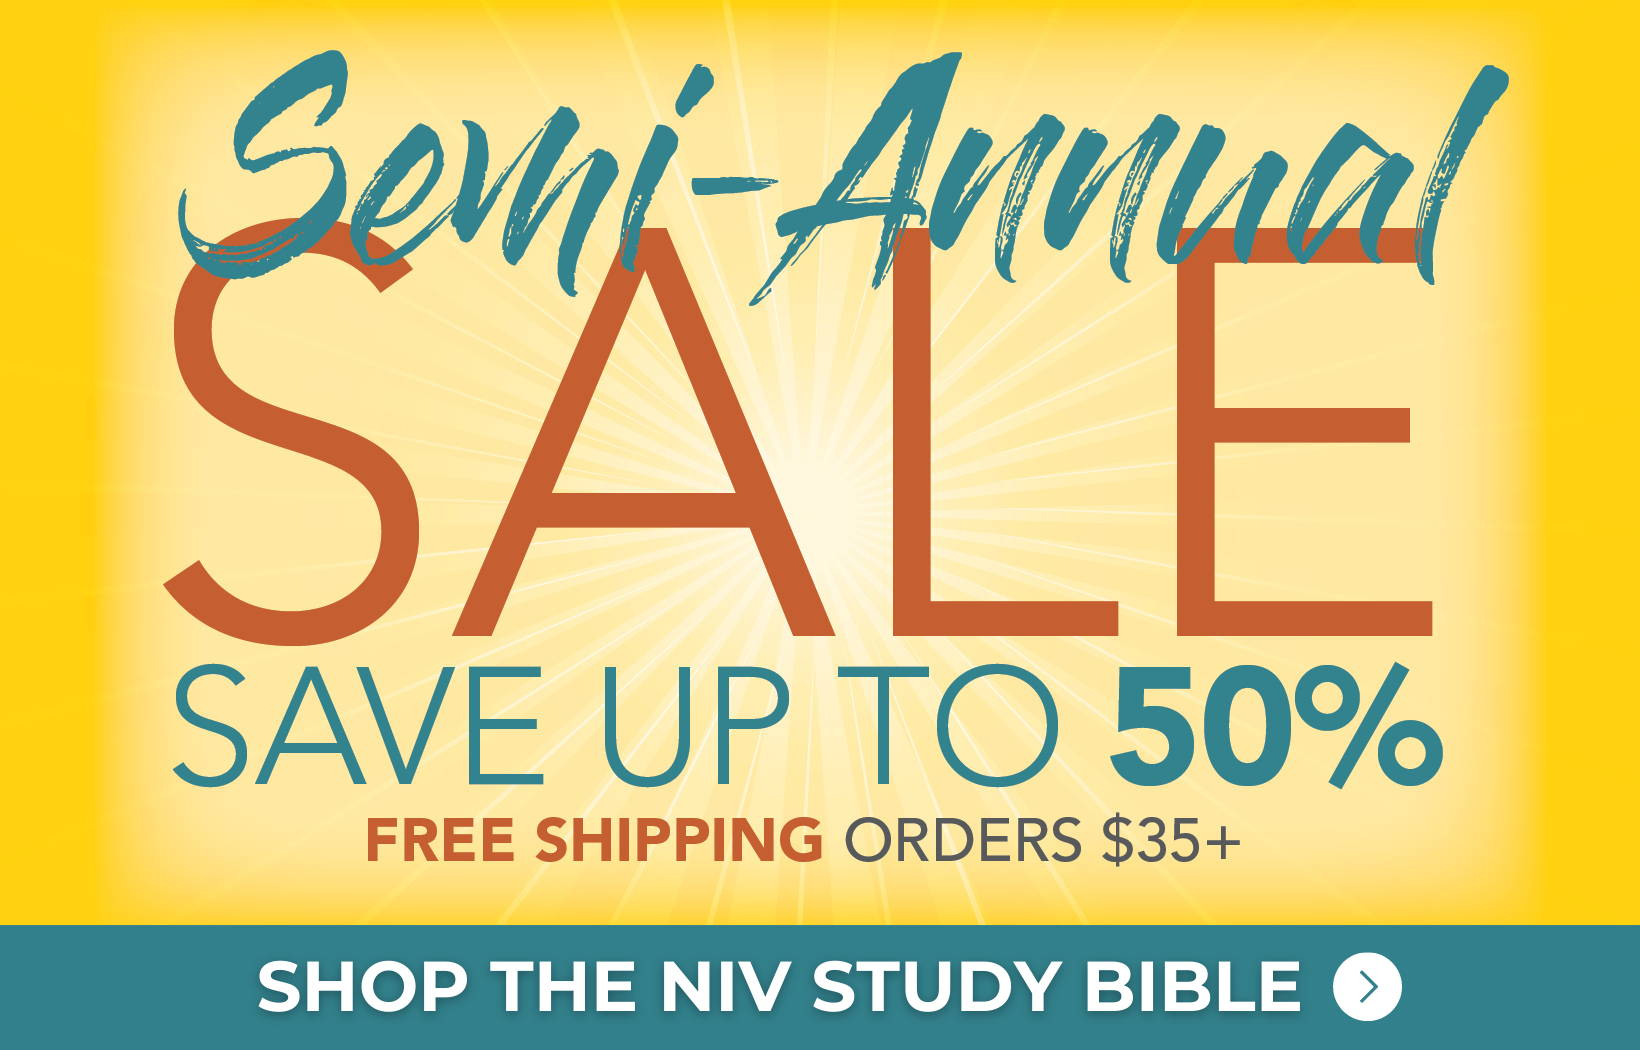 Semi-Annual Sale cont. | Save up to 50%